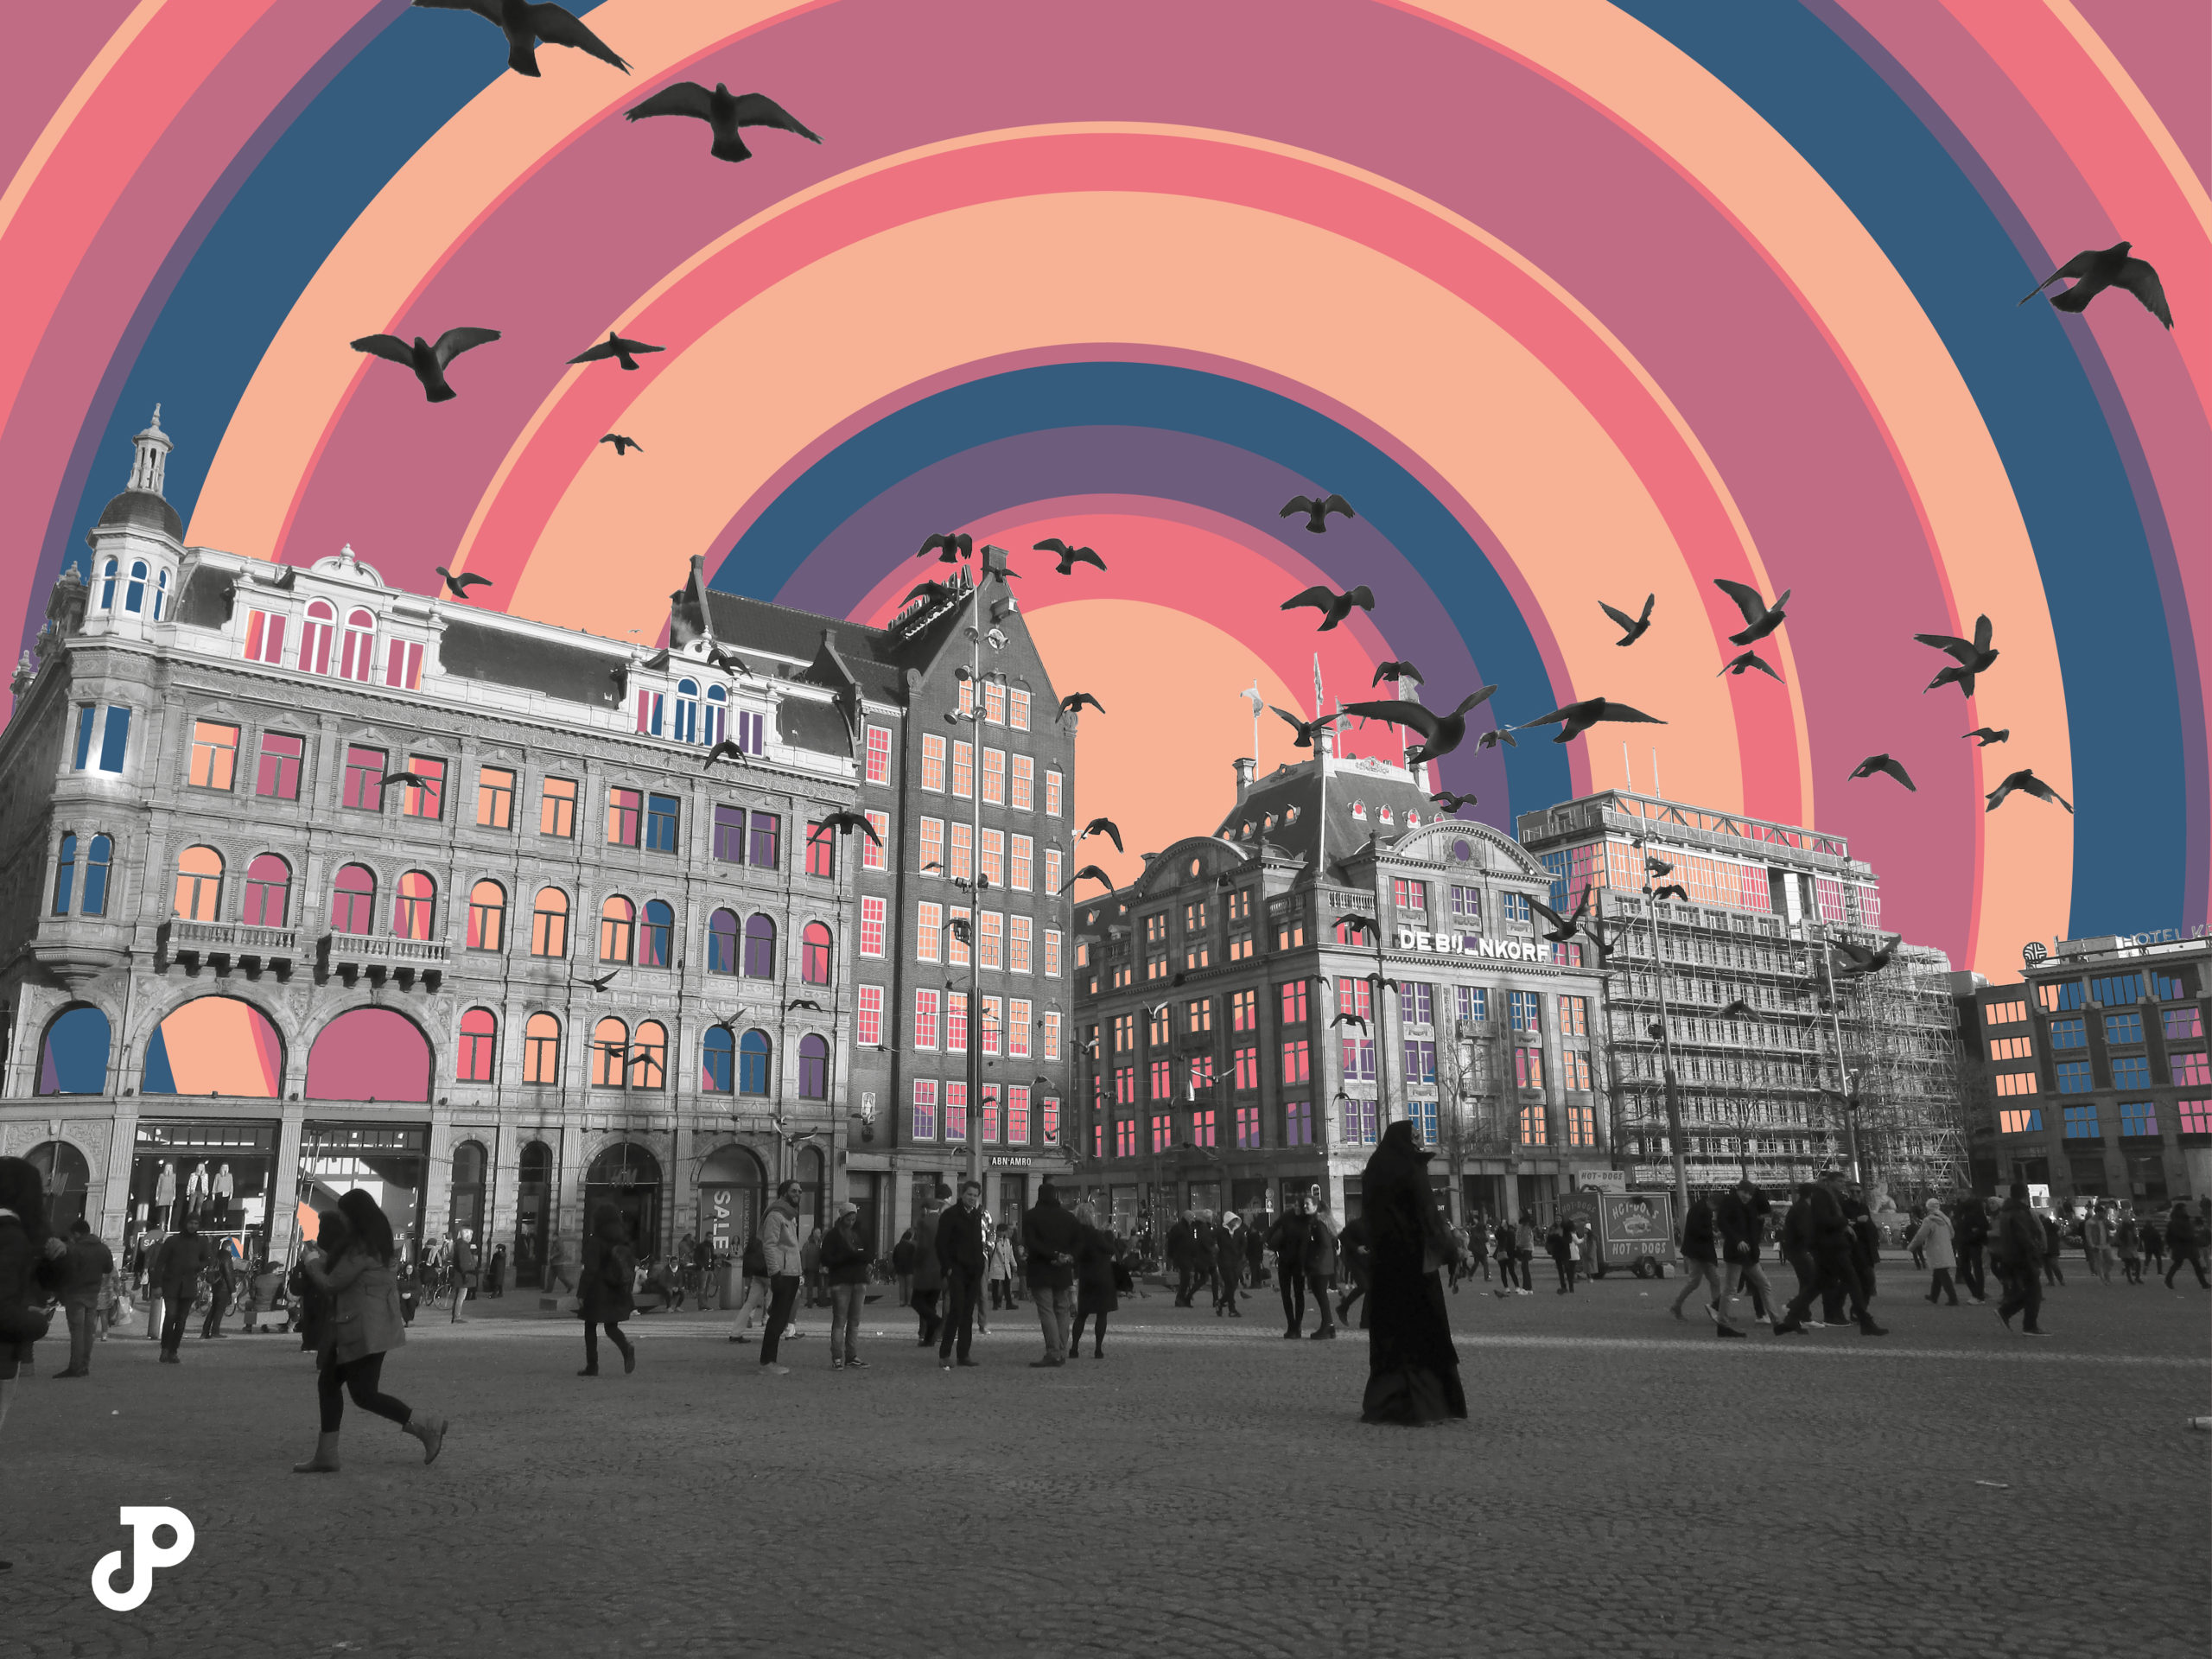 a photograph of buildings in Amsterdam with a colorful pop-art design of concentric circles replacing the sky